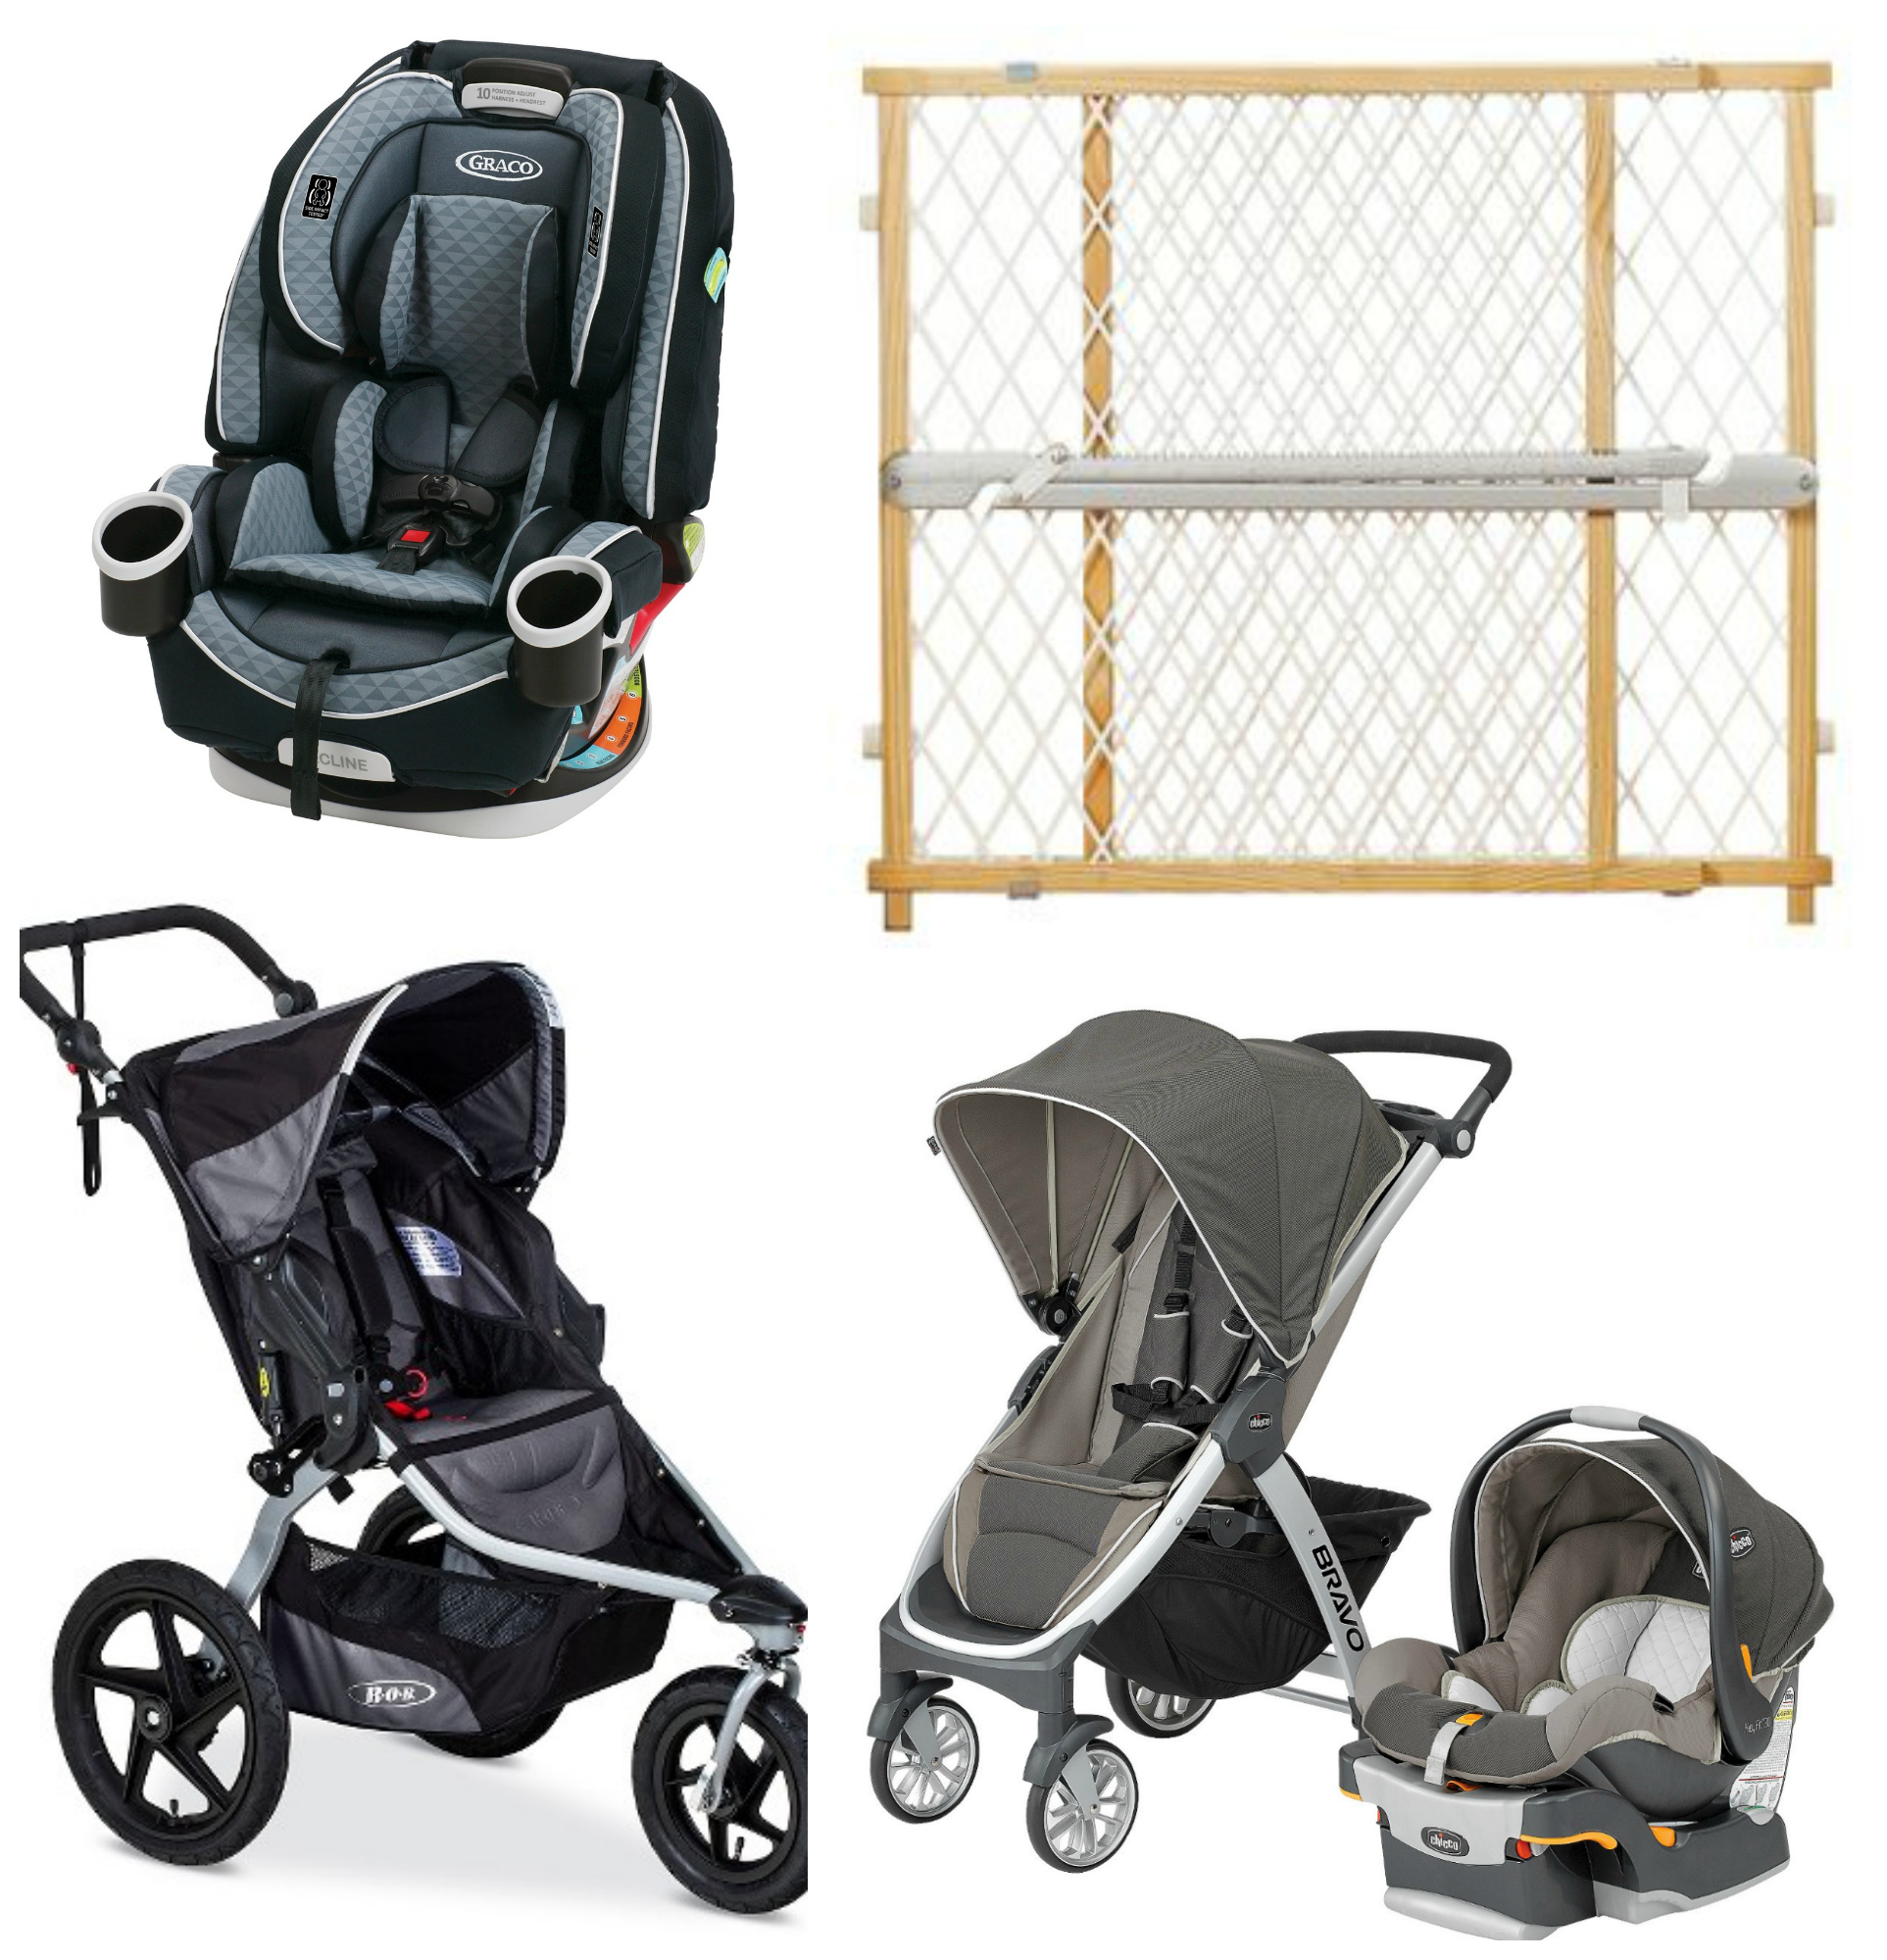 deals on car seats and stroller